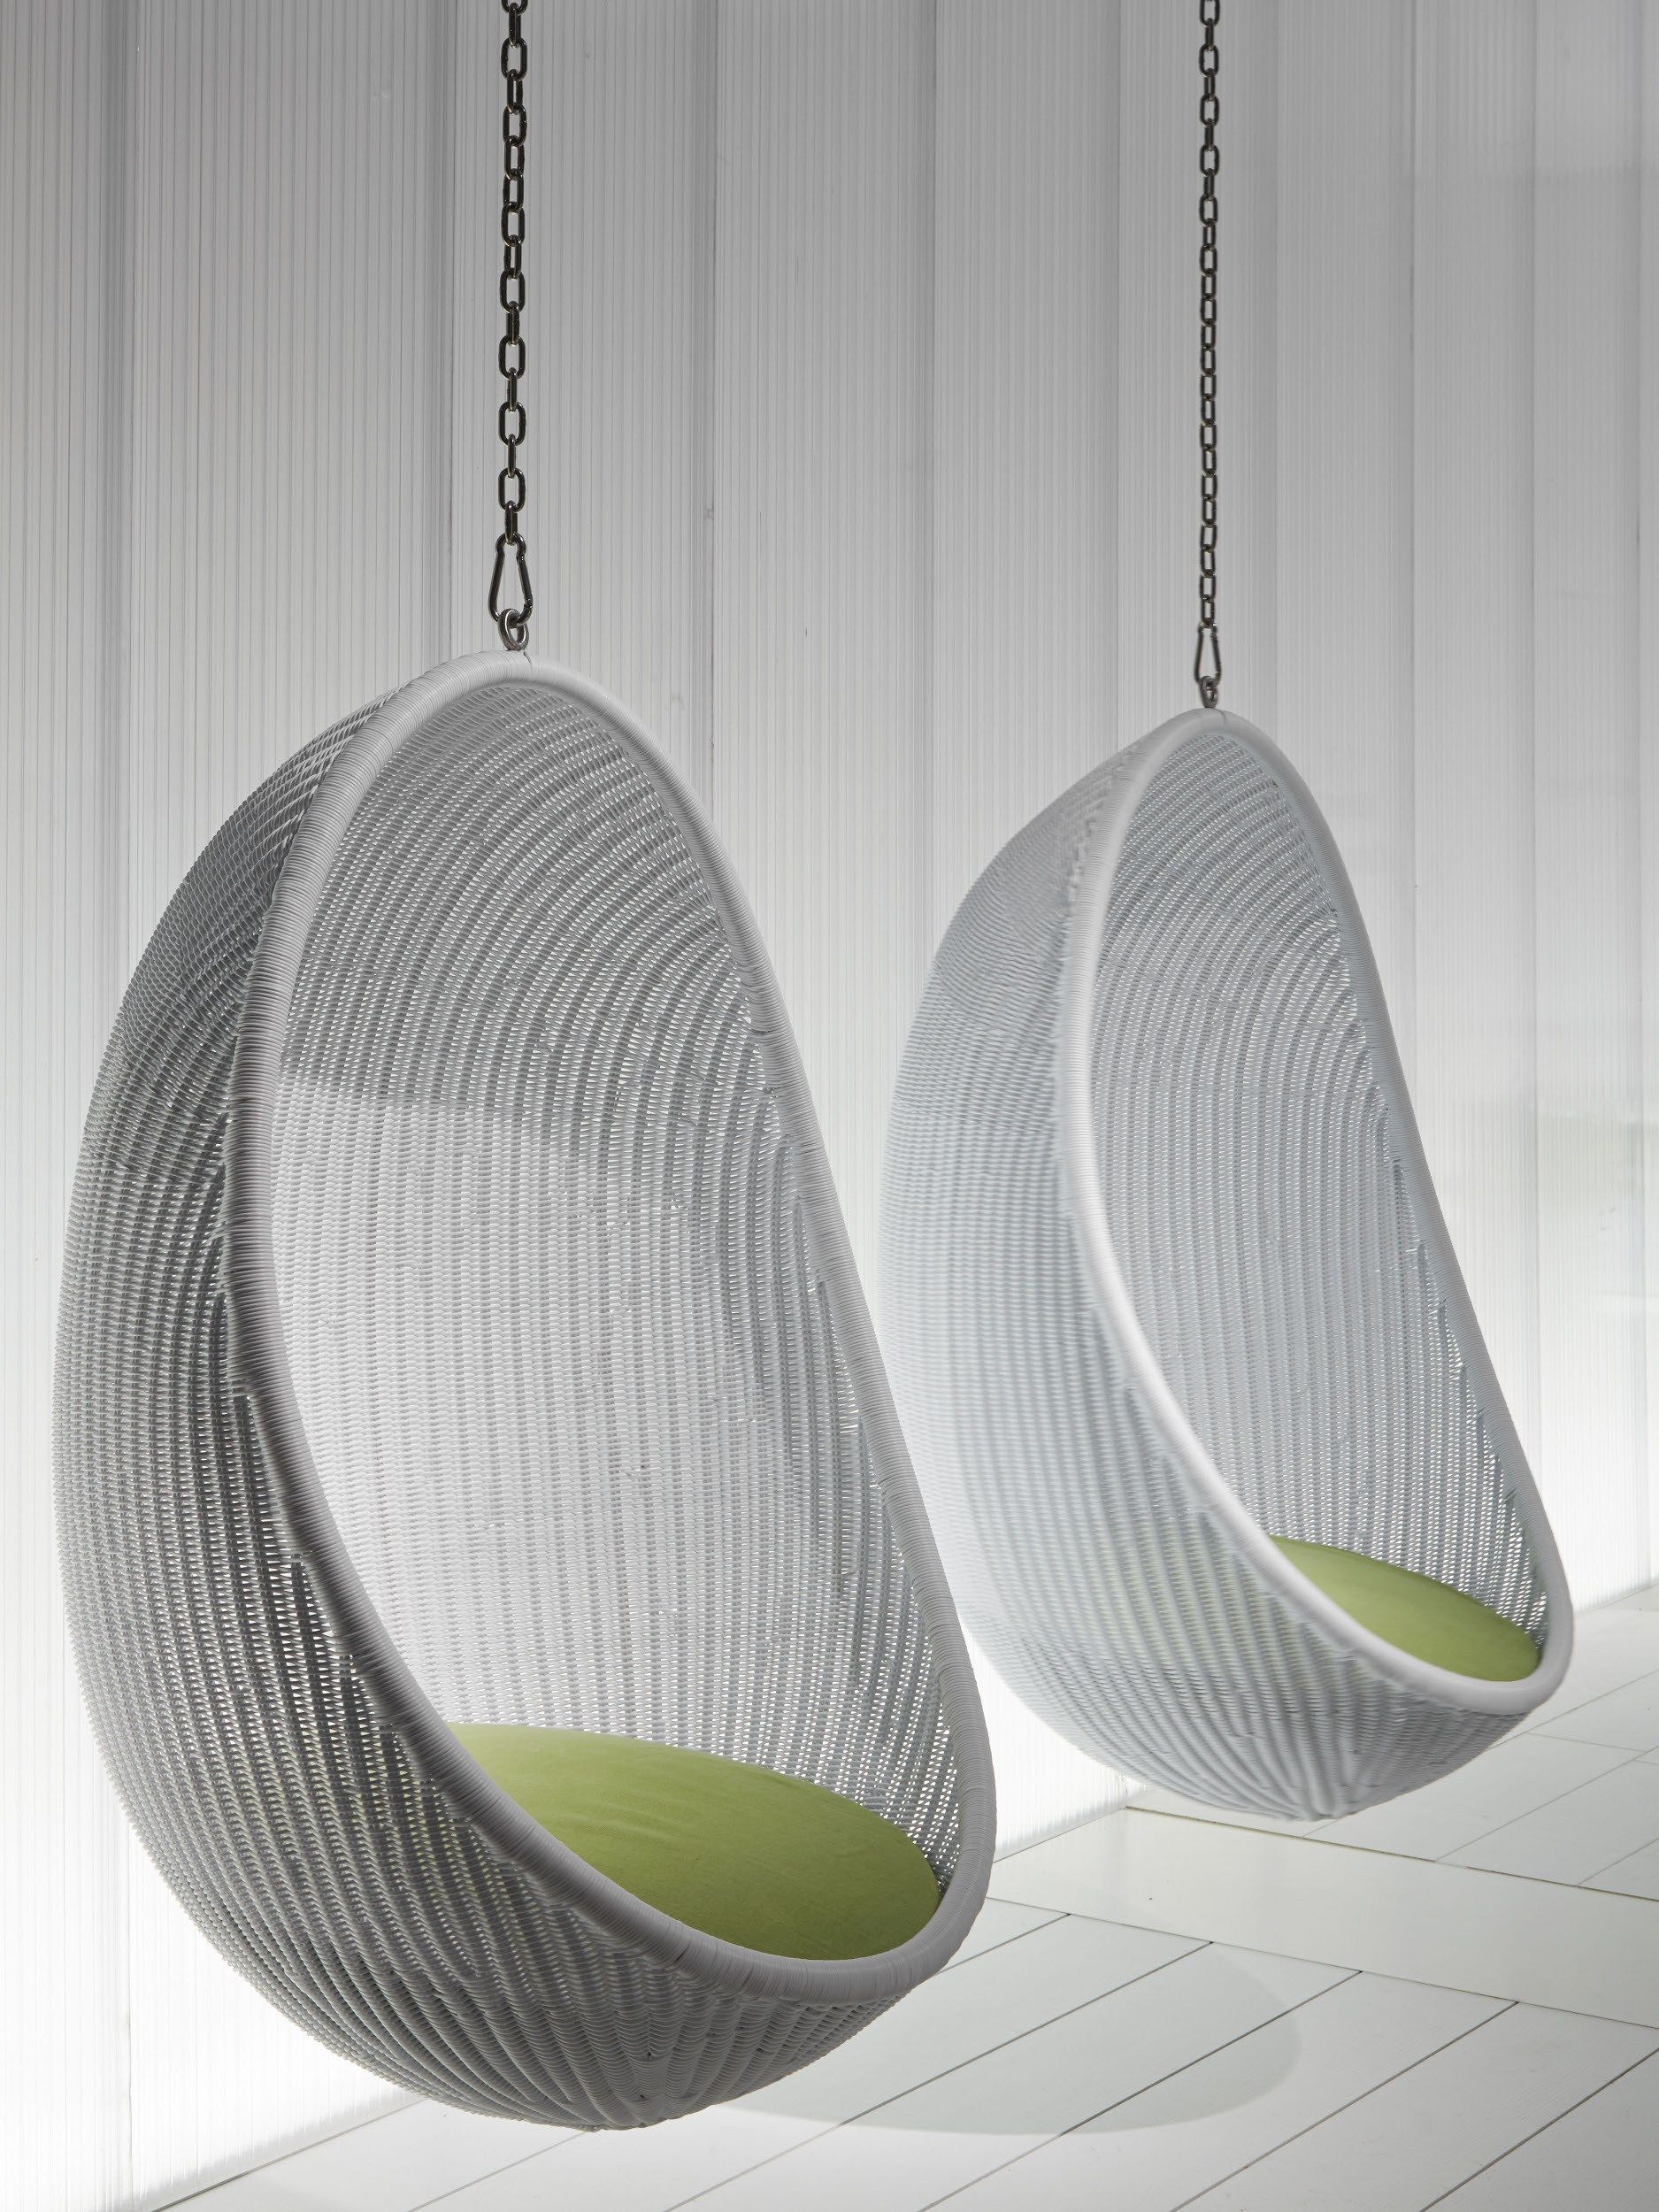 Furniture nice looking white woven rattan two hanging egg for Chairs that hang from the ceiling ikea